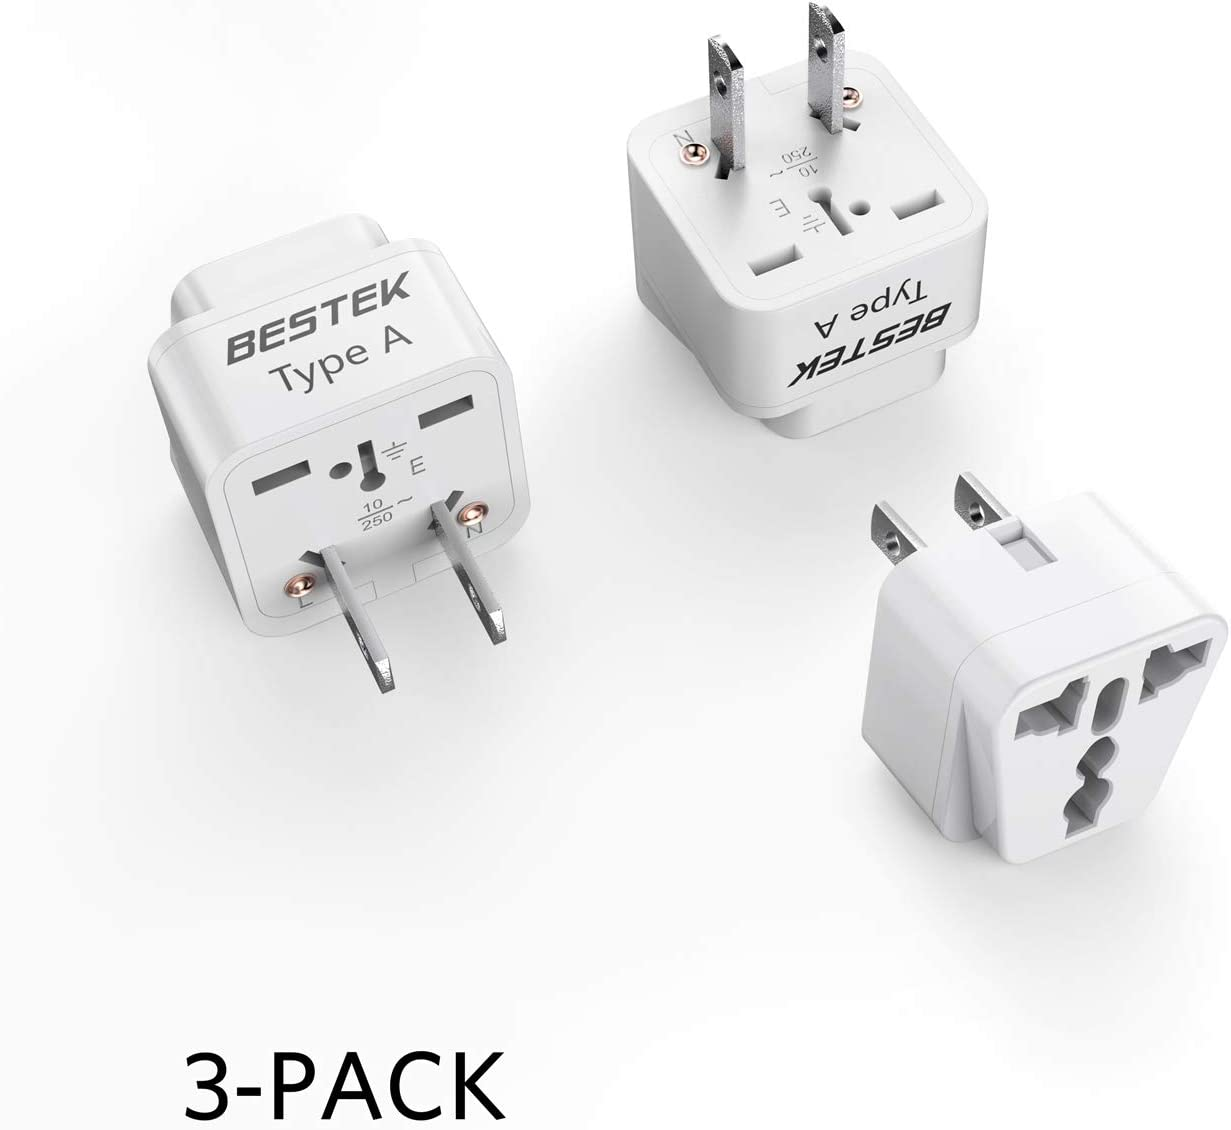 BESTEK Japan Travel Plug Adapter, Grounded Universal Type A Plug Adapter JP to US Adapter - Ultra Compact for US, Japan, China Phones, Laptops, Camera Chargers and More, 3 Pack